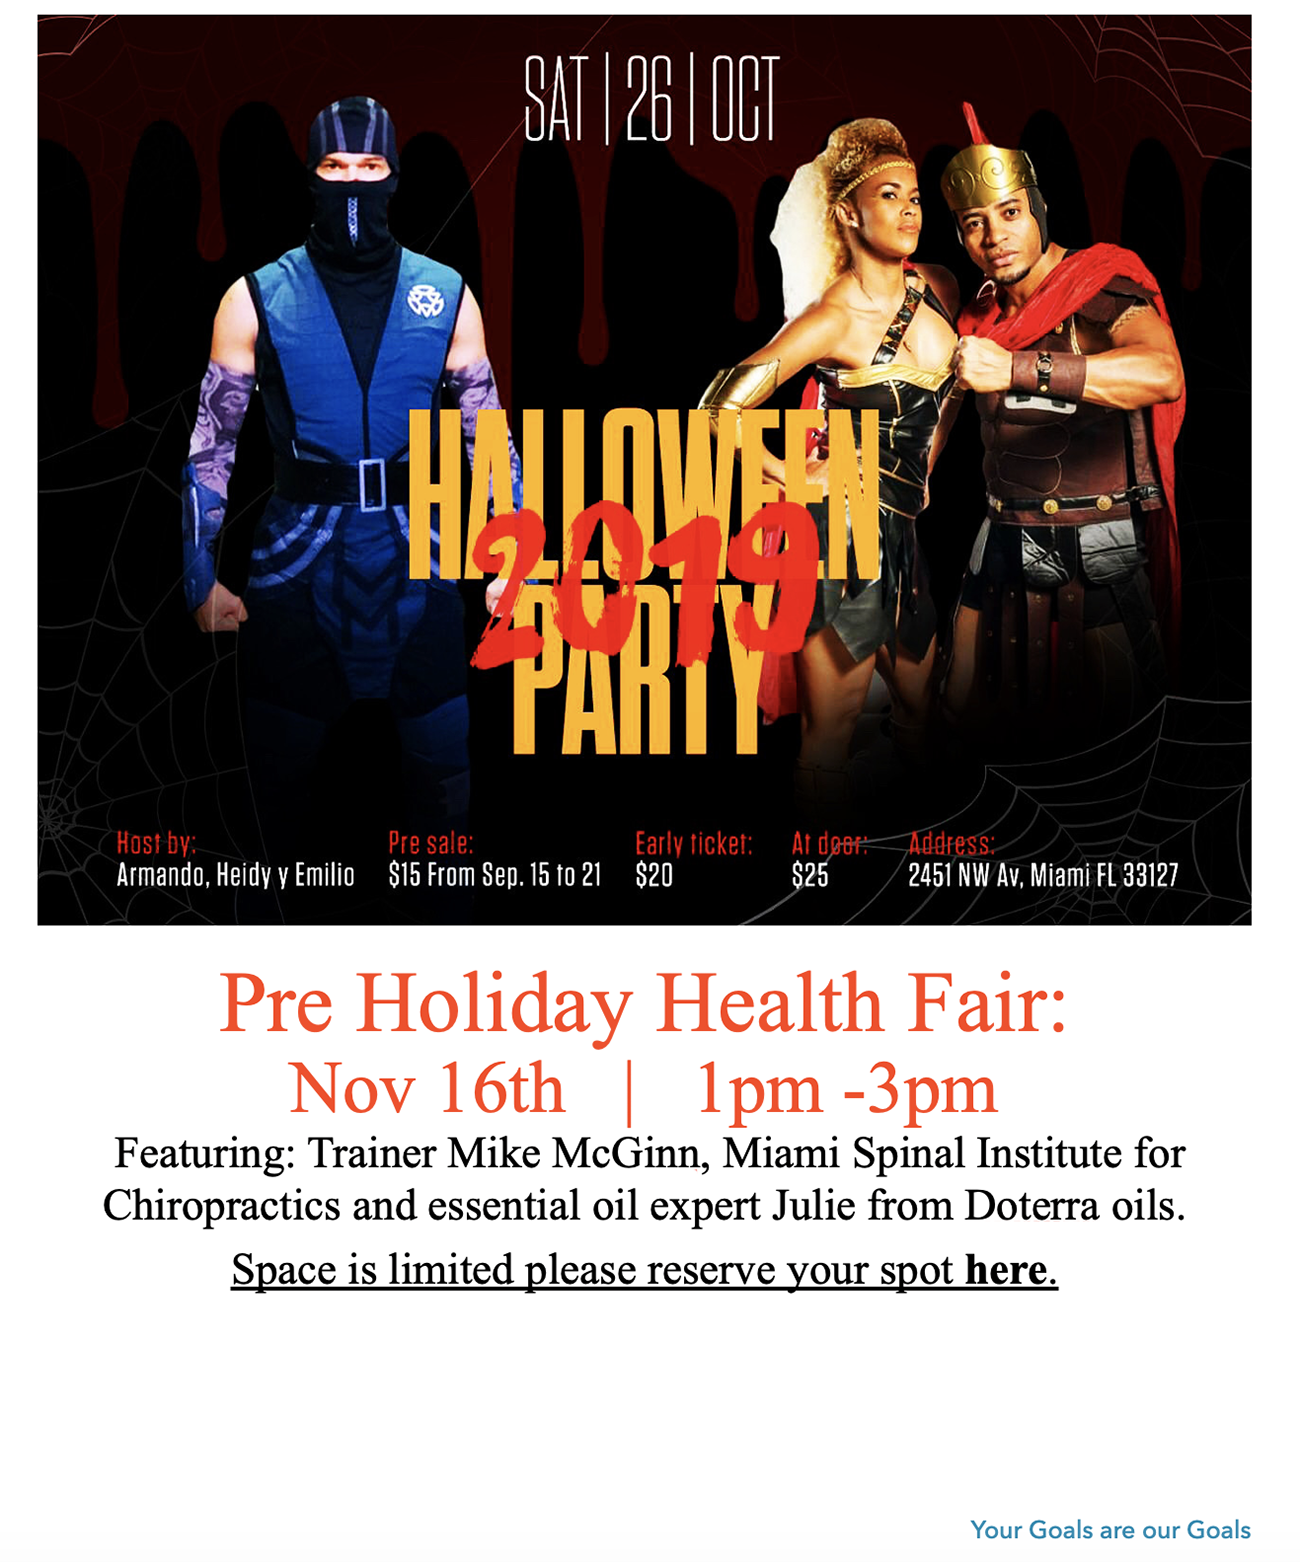 Olympia Gym Pre Holiday Health Fair